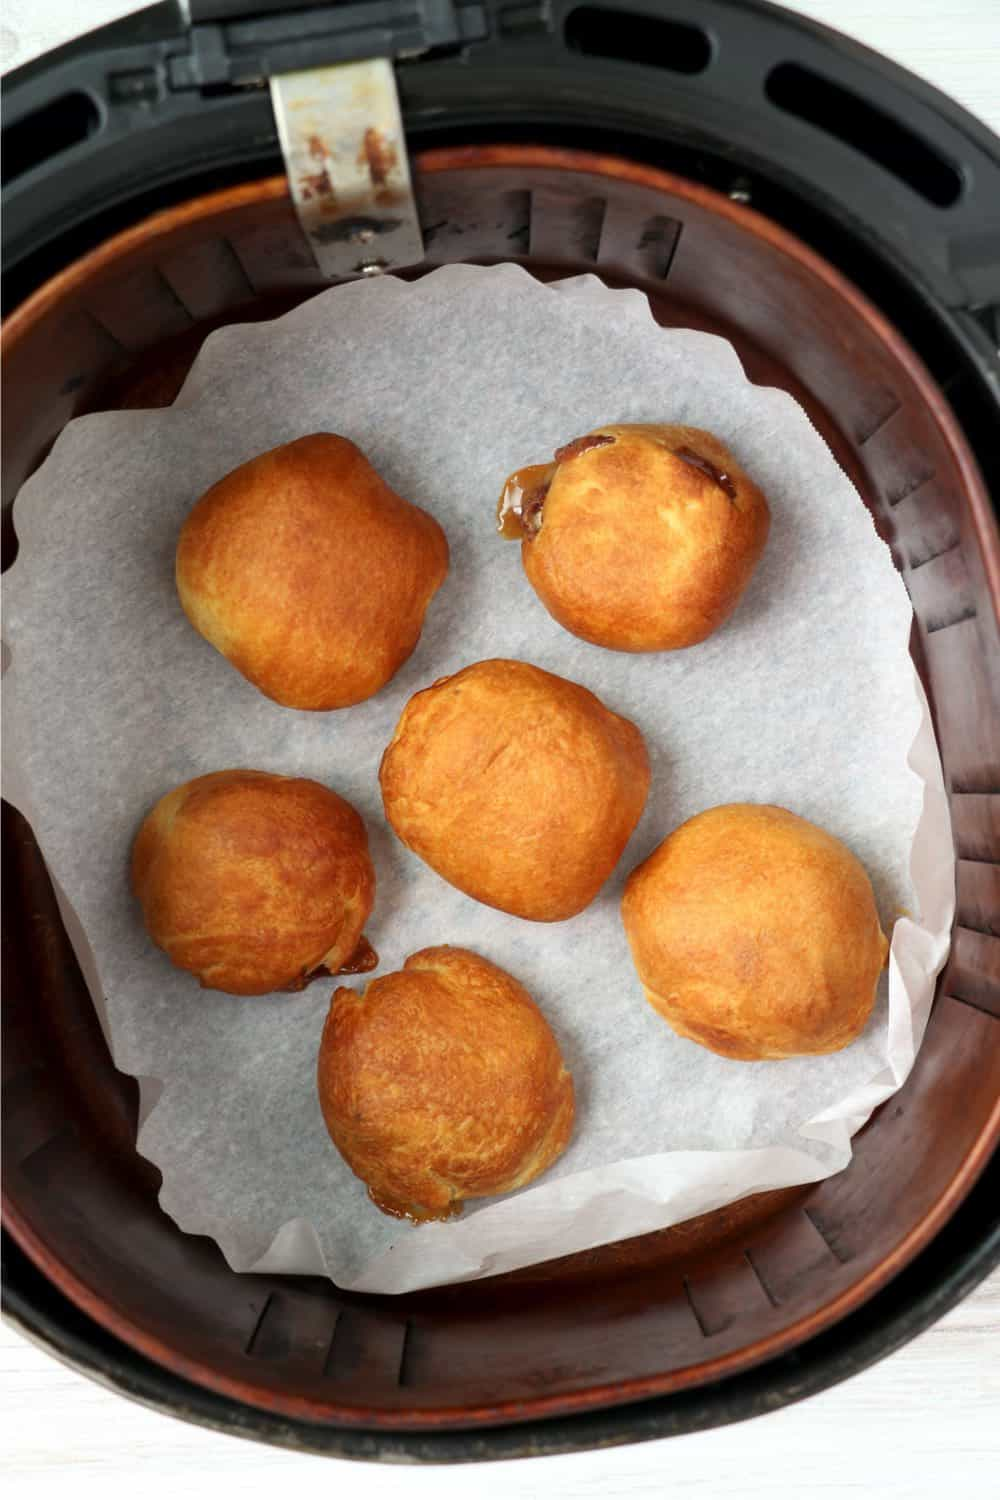 Cooked Snickers covered in biscuit dough in the air fryer